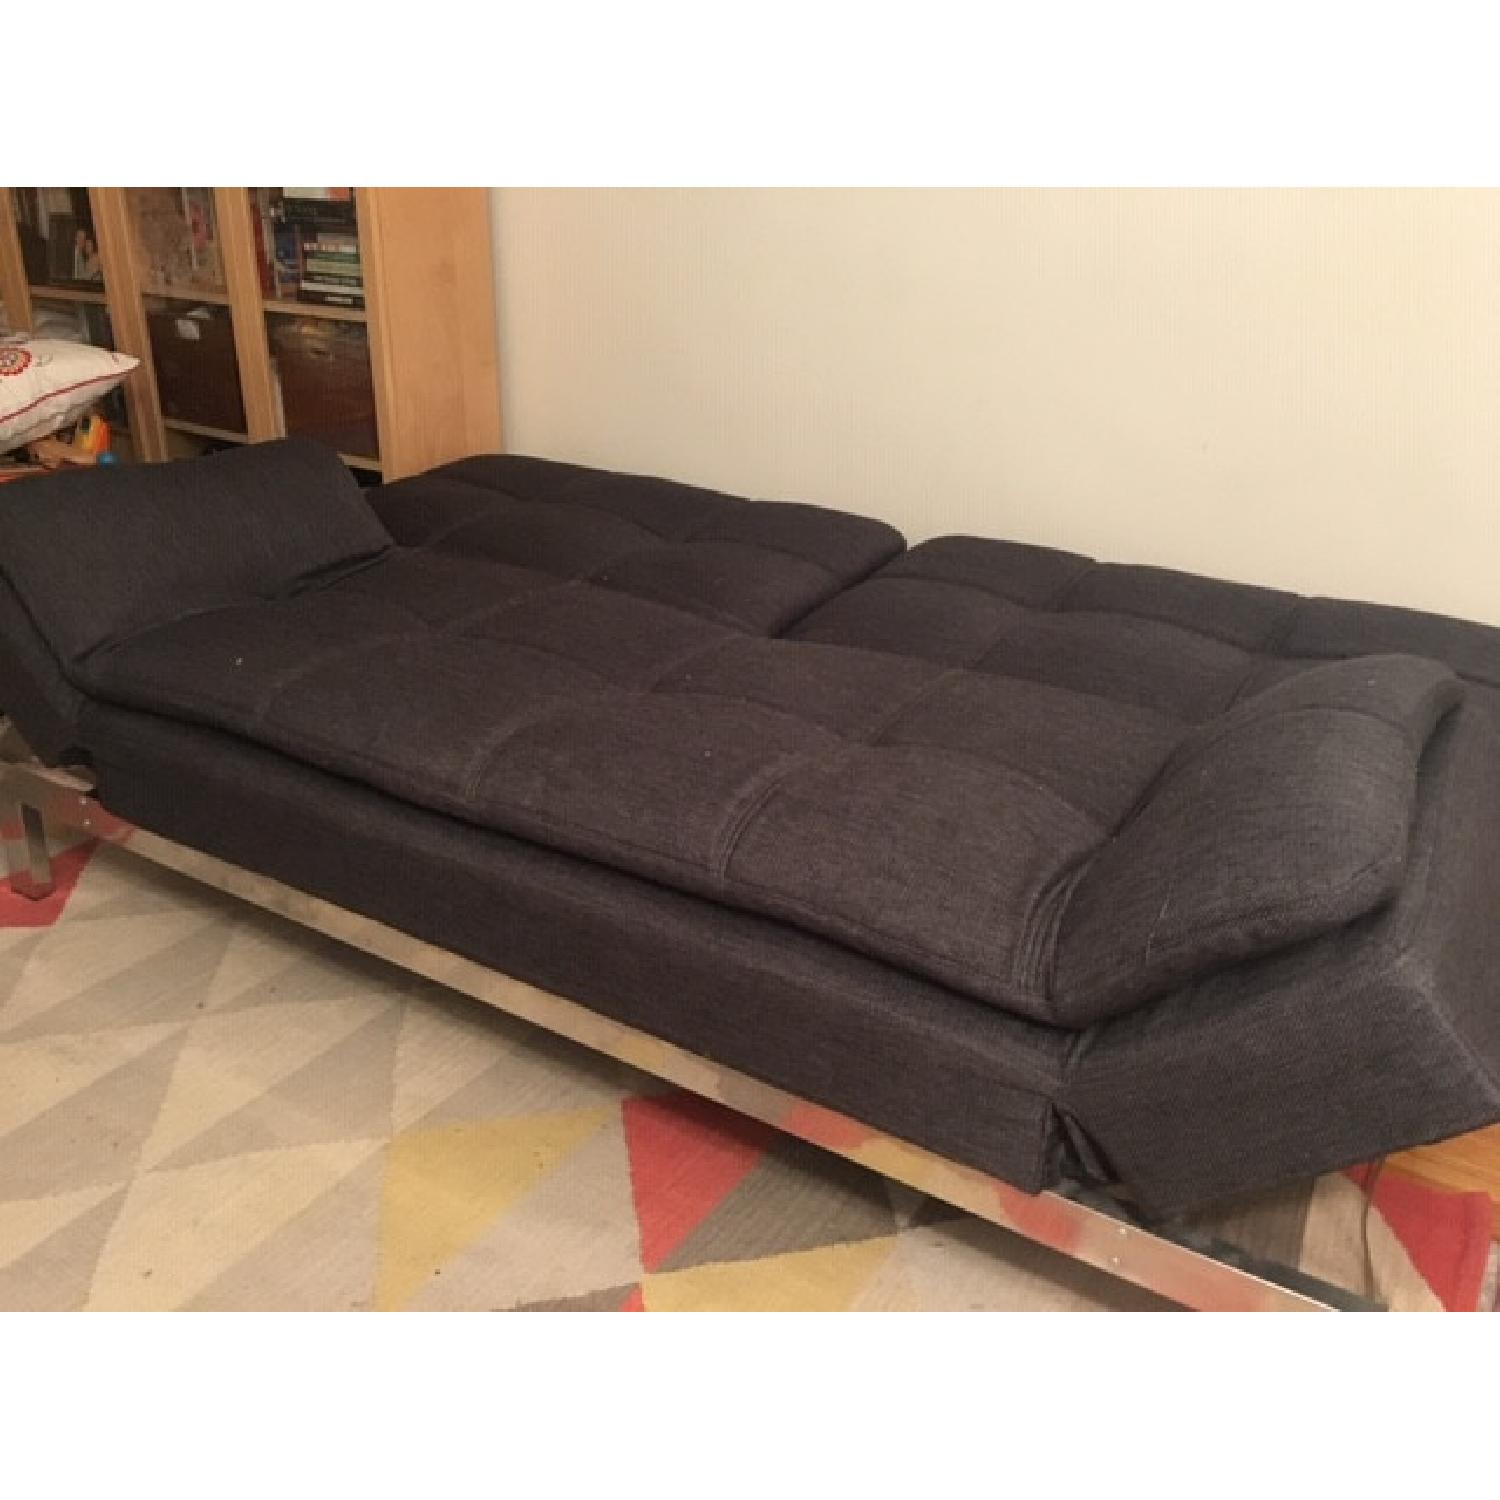 Lifestyle Solutions Serta Convertible Sofa - image-6